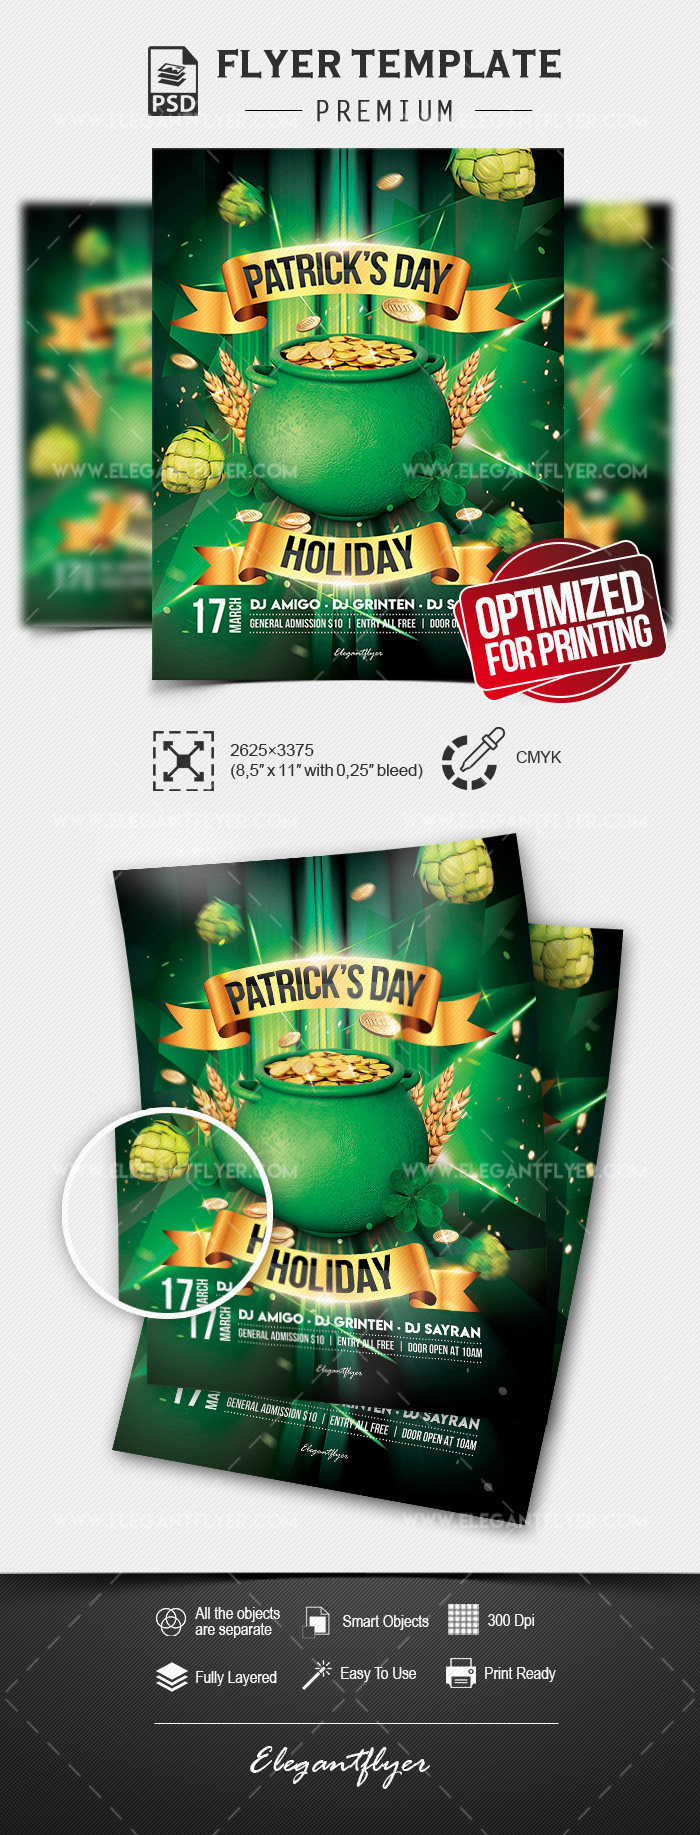 st  patrick u2019s day holiday  u2013 flyer psd template  u2013 by